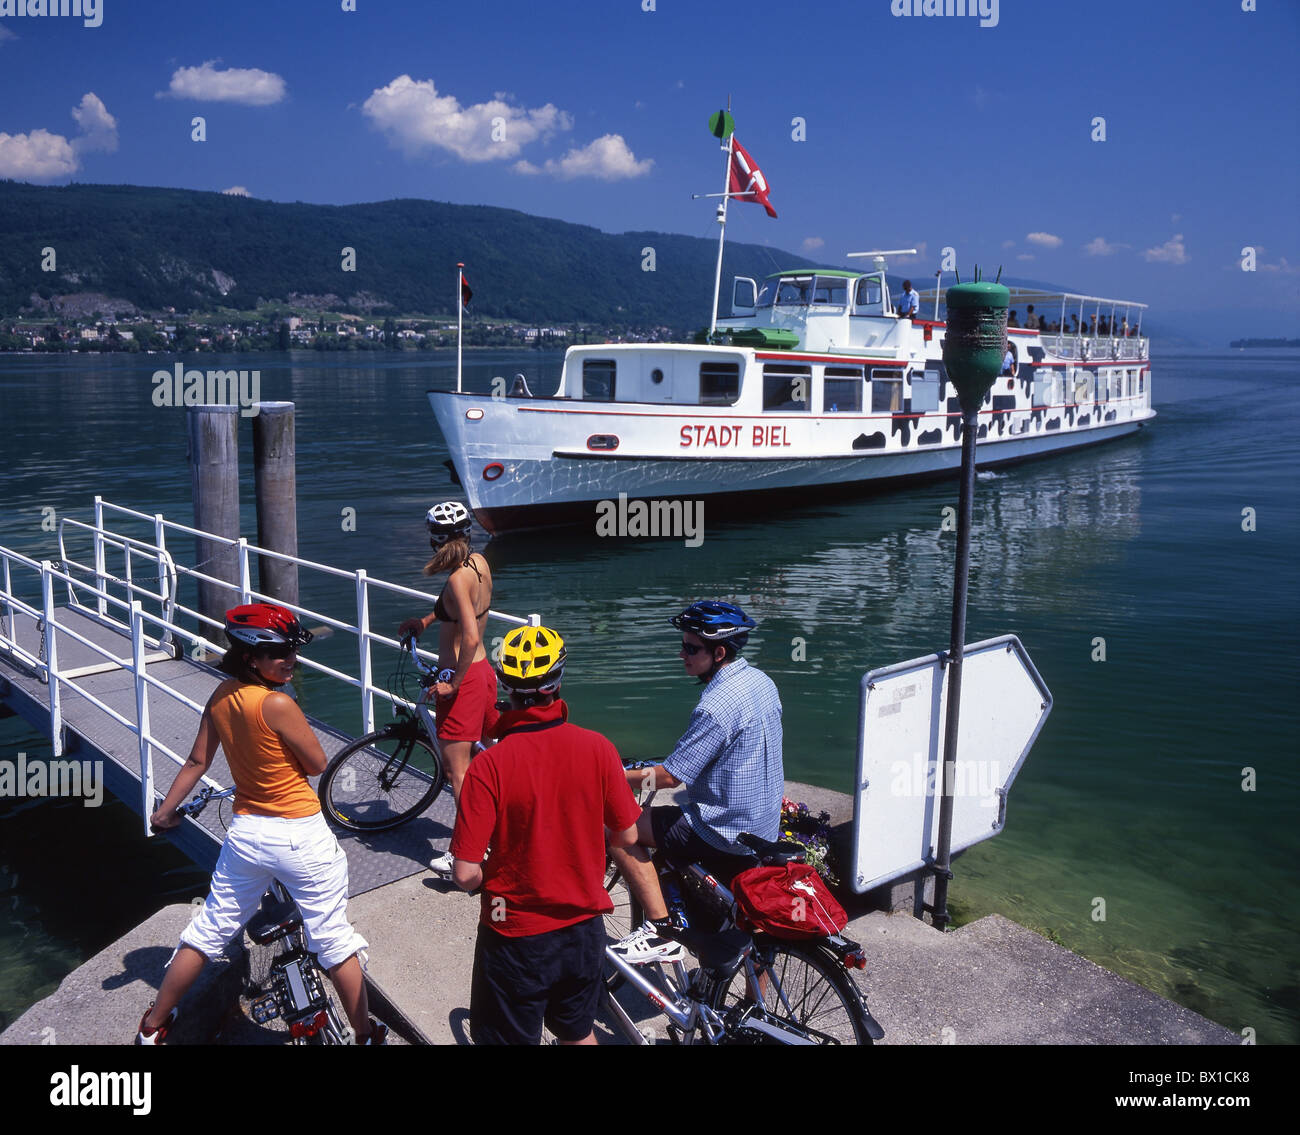 Canton Bern bicycle Bielersee Lake Biel bike canton Erlach excursion group lake lakes scenery landscape - Stock Image